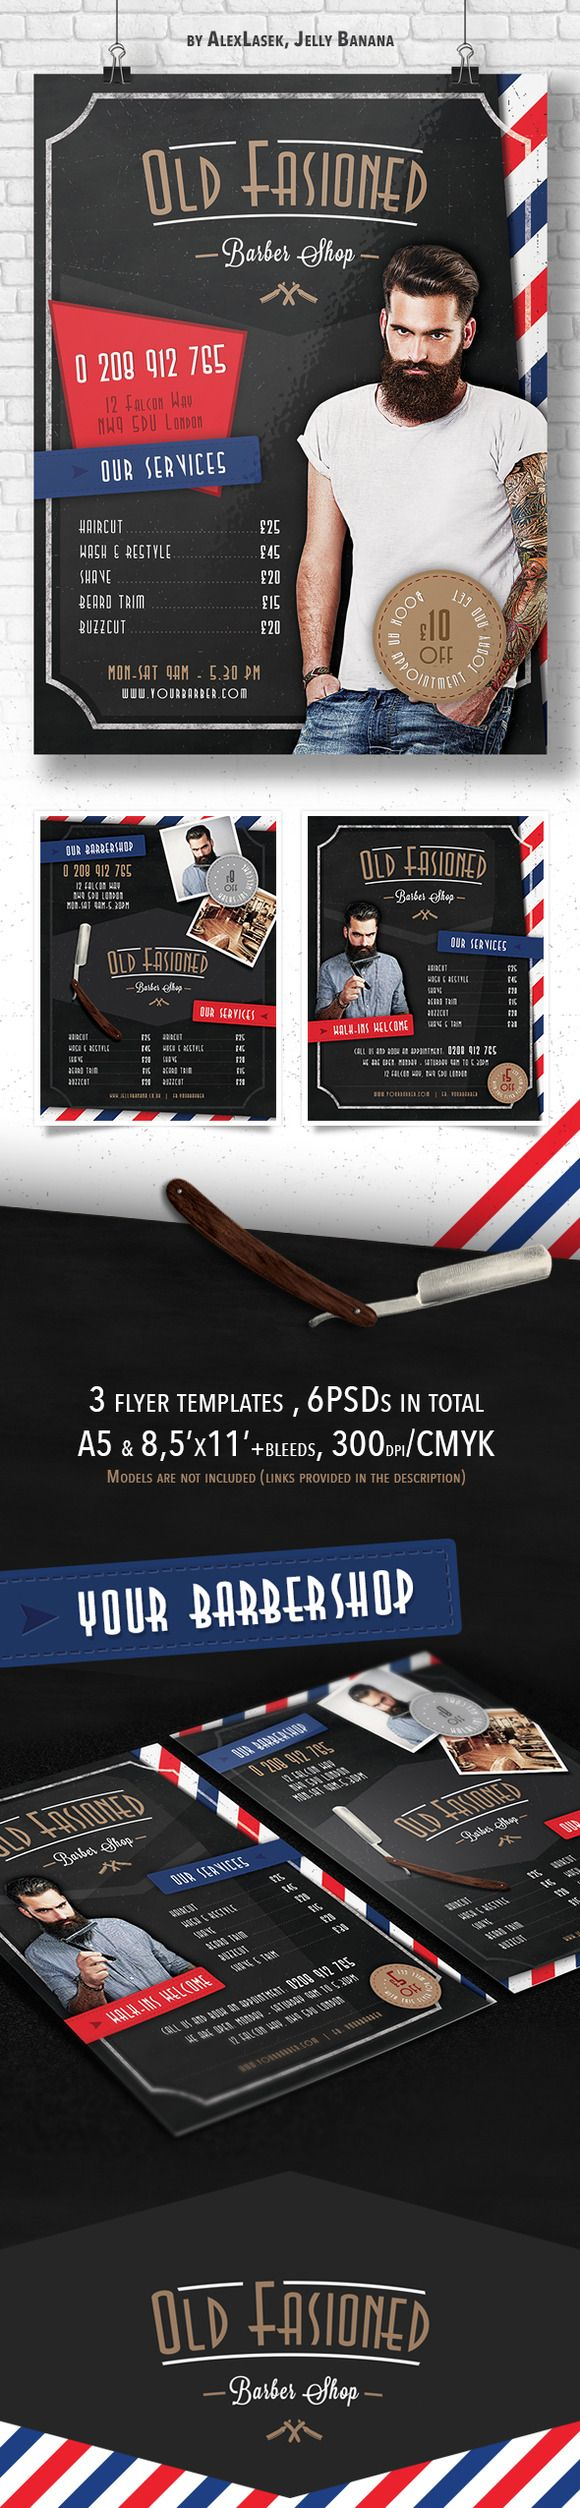 Barber Shop Price List Template Haircut And Shave Retro Barber Sign - 3 barber shop flyer templates hairdresser price listbarber